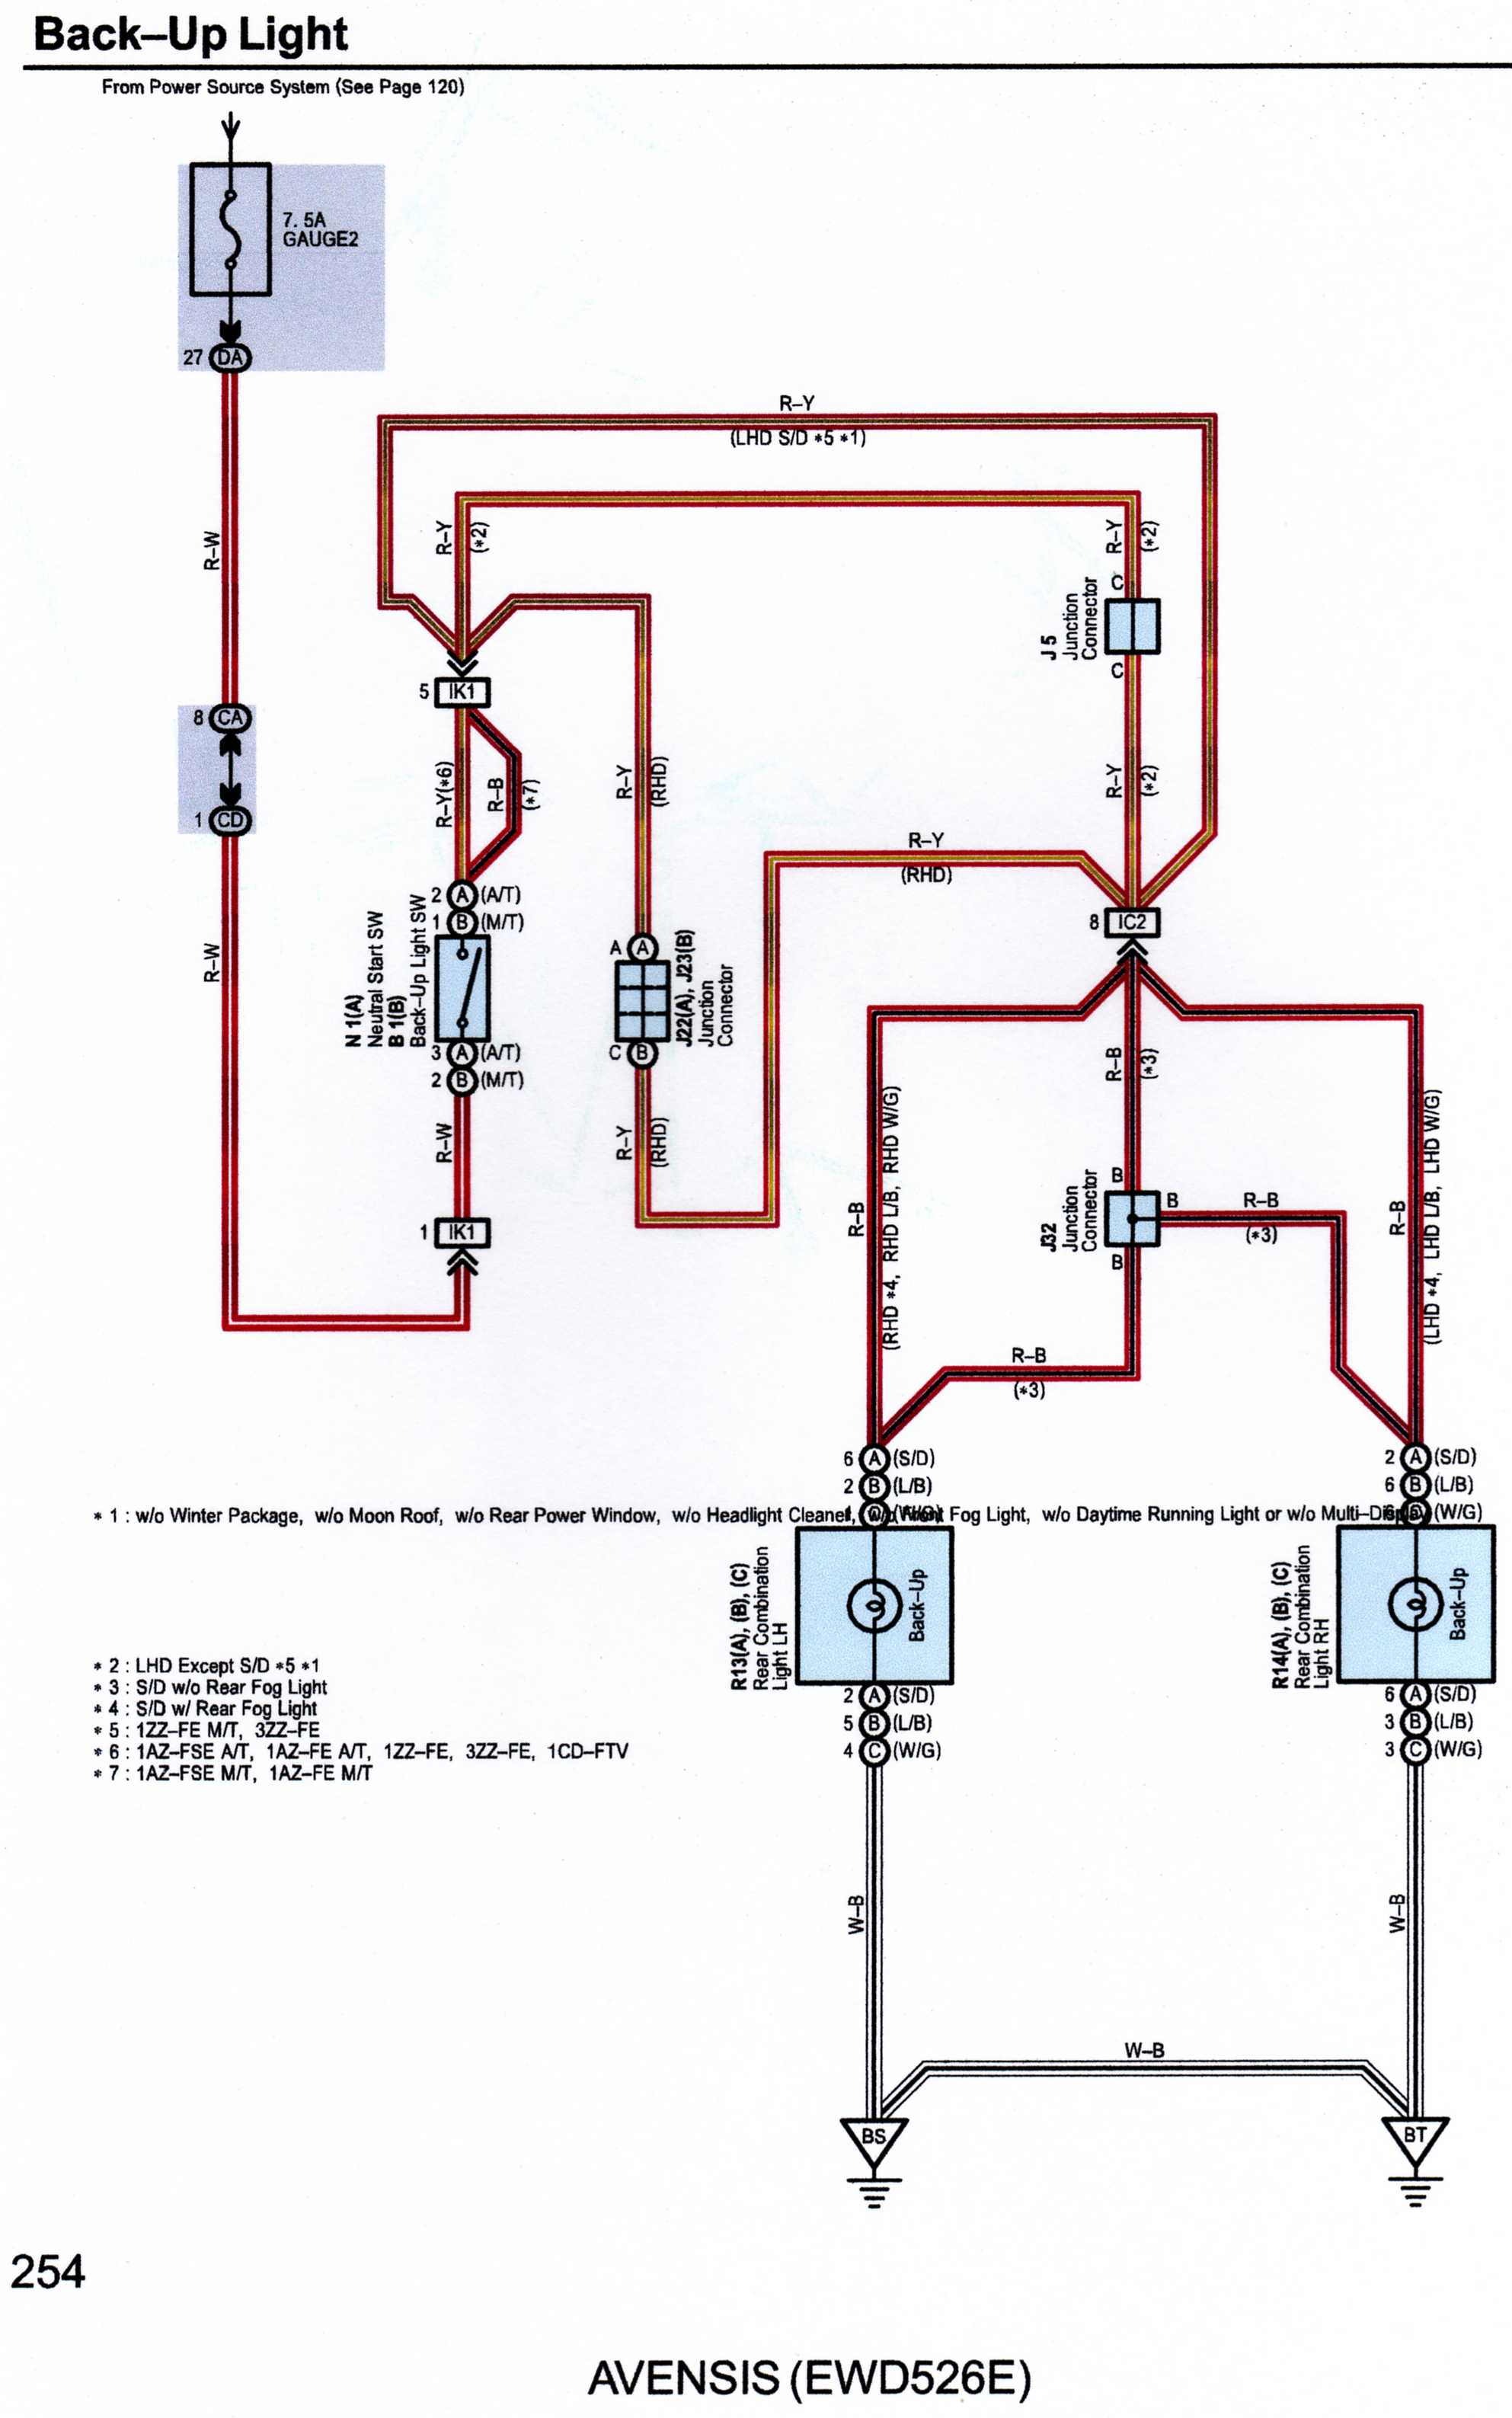 2004 Avensis Rear Lights Wiring Diagram